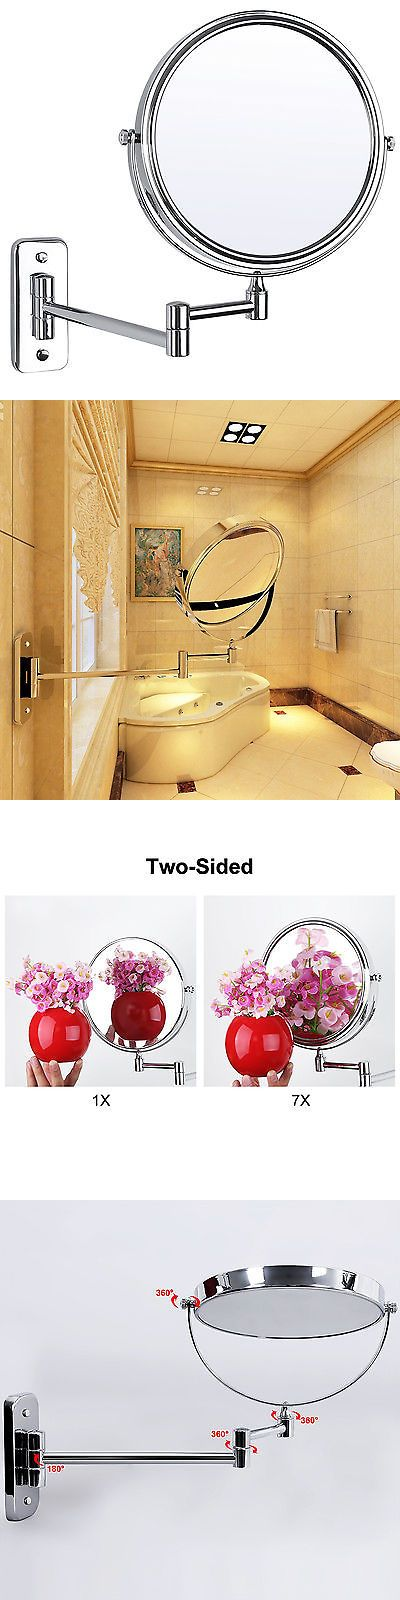 Makeup Mirrors: Two-Sided Magnifying Wall Mounted Swivel Make Up Shaving Mirror Extendable BUY IT NOW ONLY: $34.25